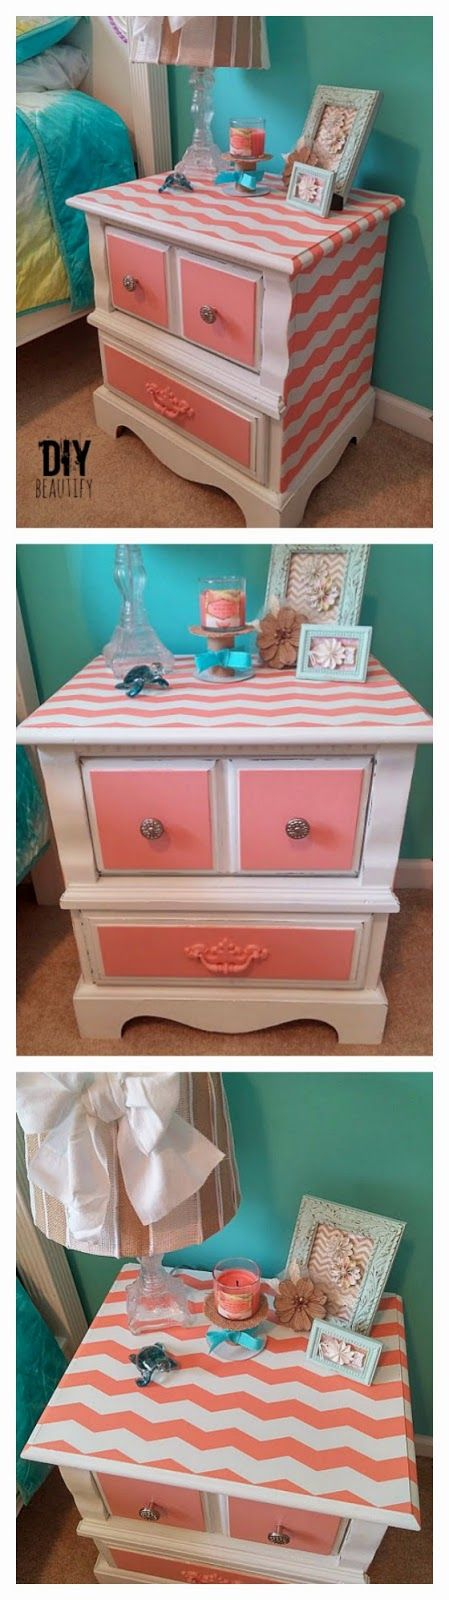 Chevron Stripes on nightstand www.diybeautify.com #frogtape #chevron #chalkpaint